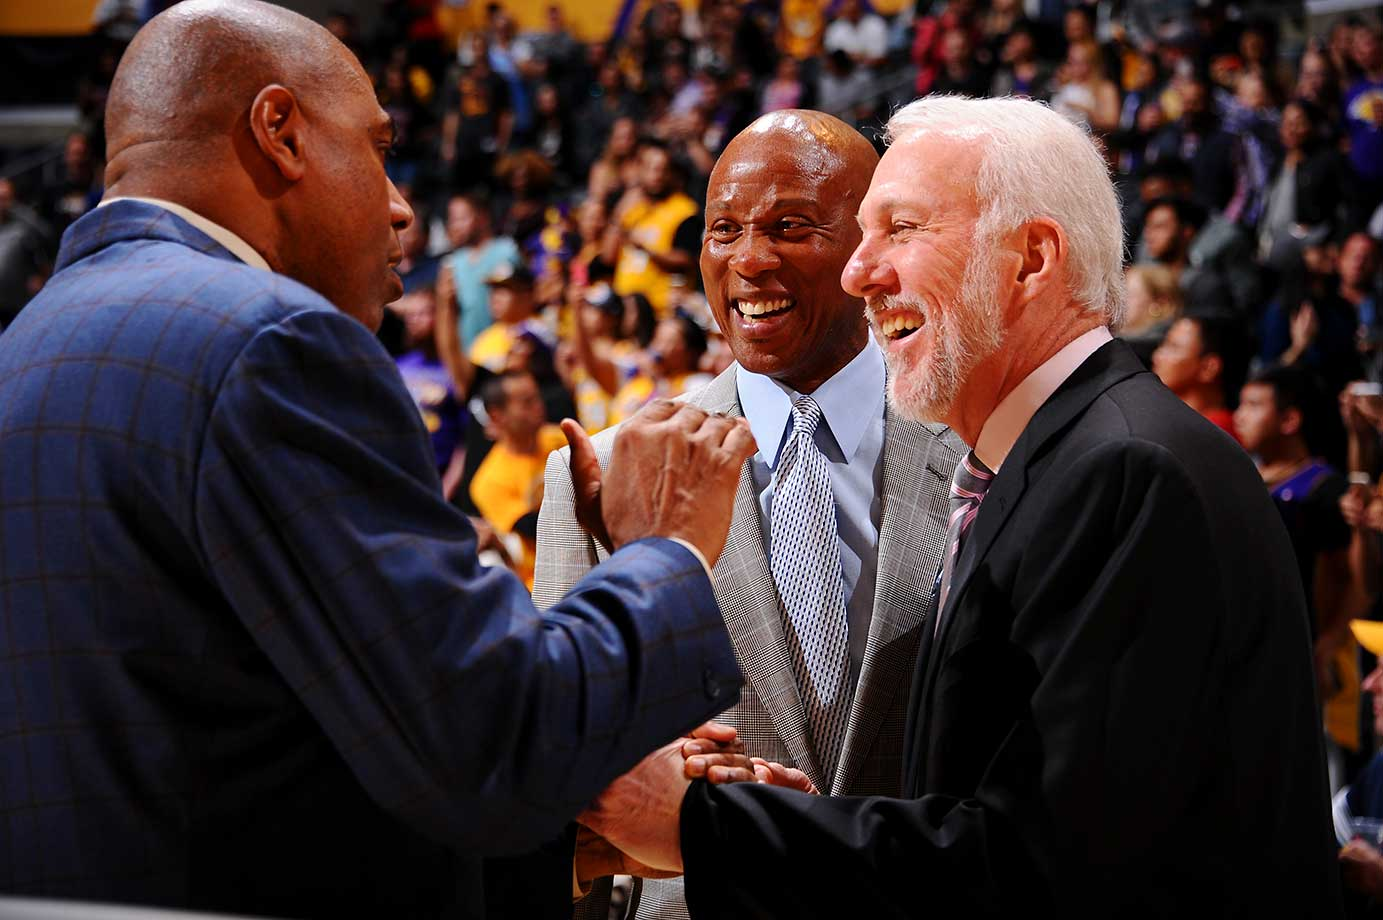 Head coach Byron Scott of the Lakers and Gregg Popovich of the San Antonio Spurs talk Magic Johnson before a game in L.A.